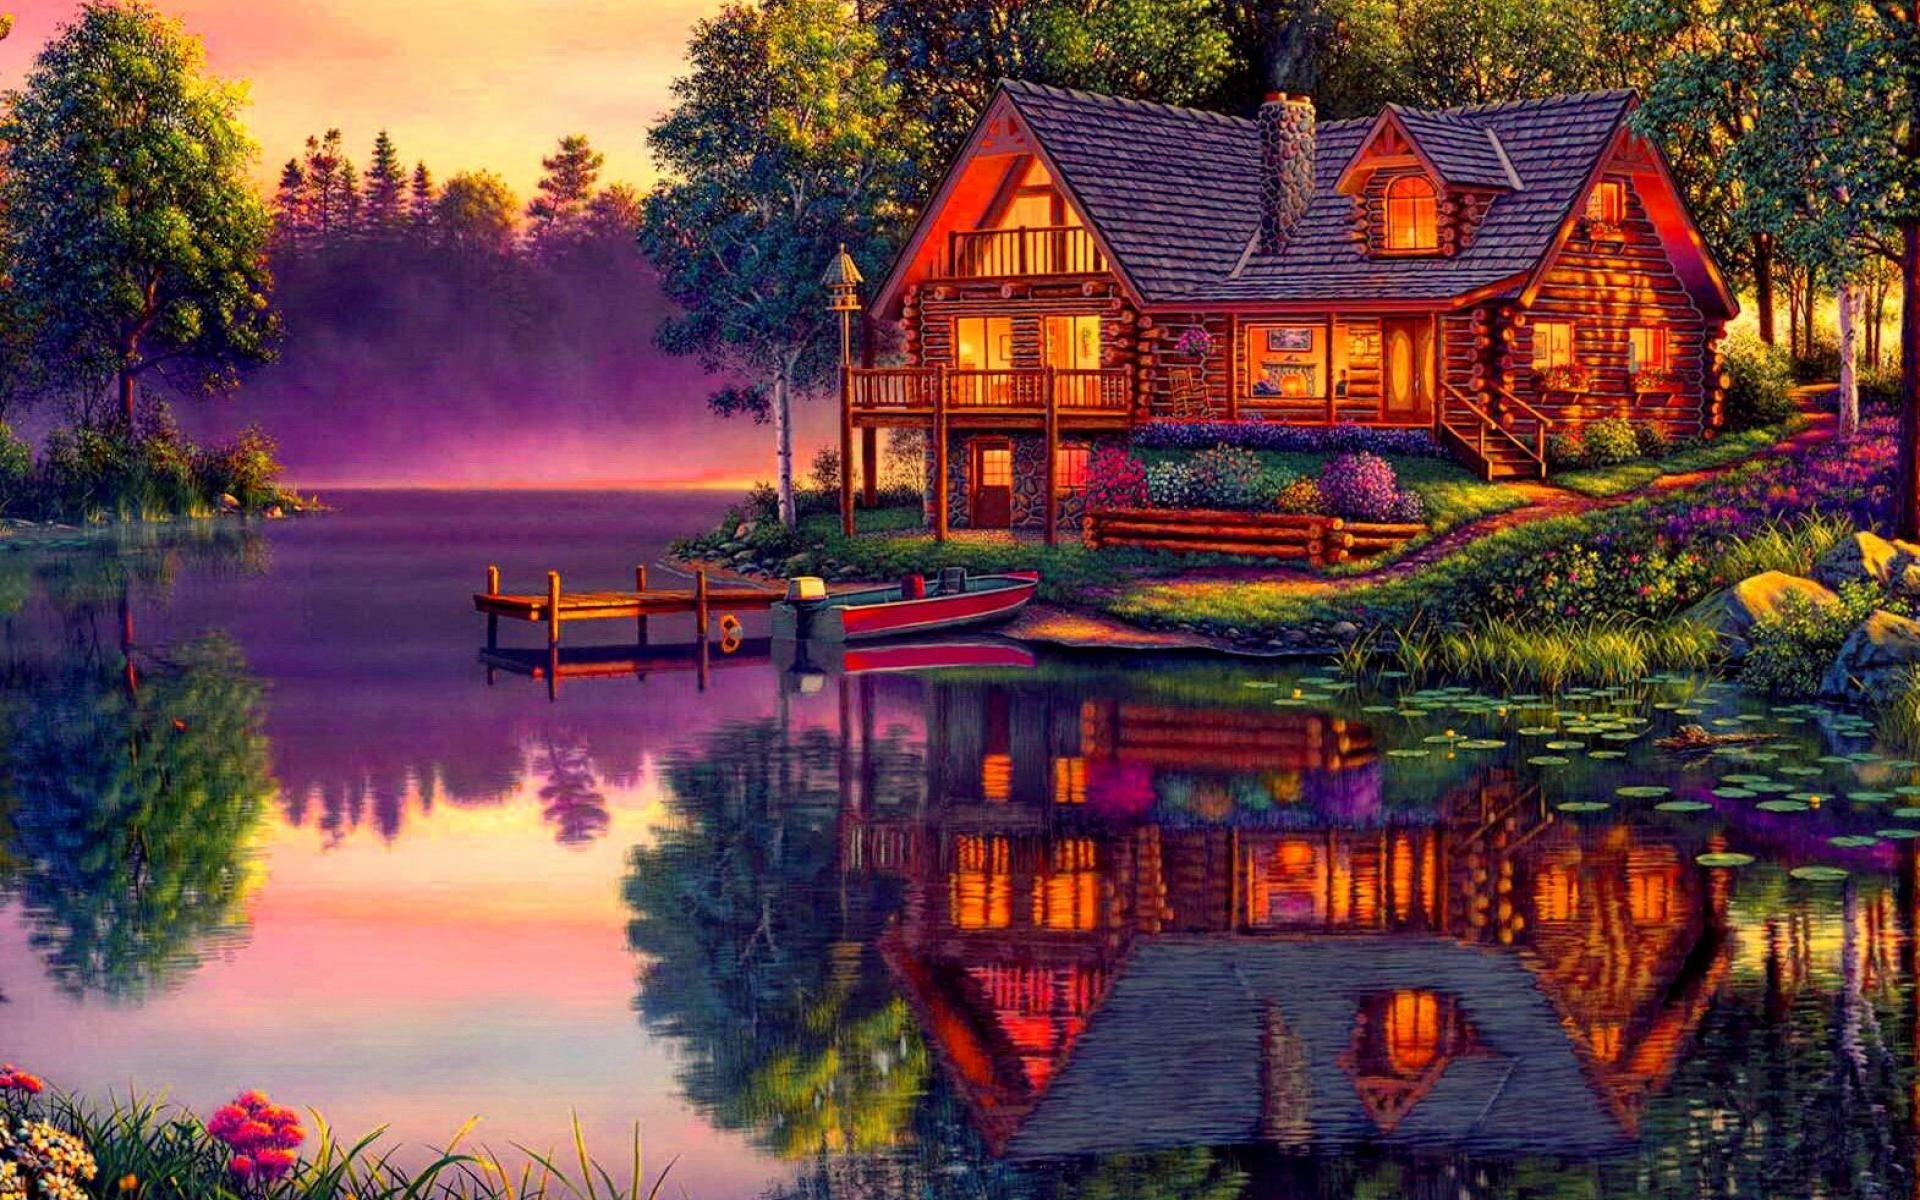 Fall Cabin The Woods Wallpaper Log Cabin On The Lake Hd Wallpaper Background Image